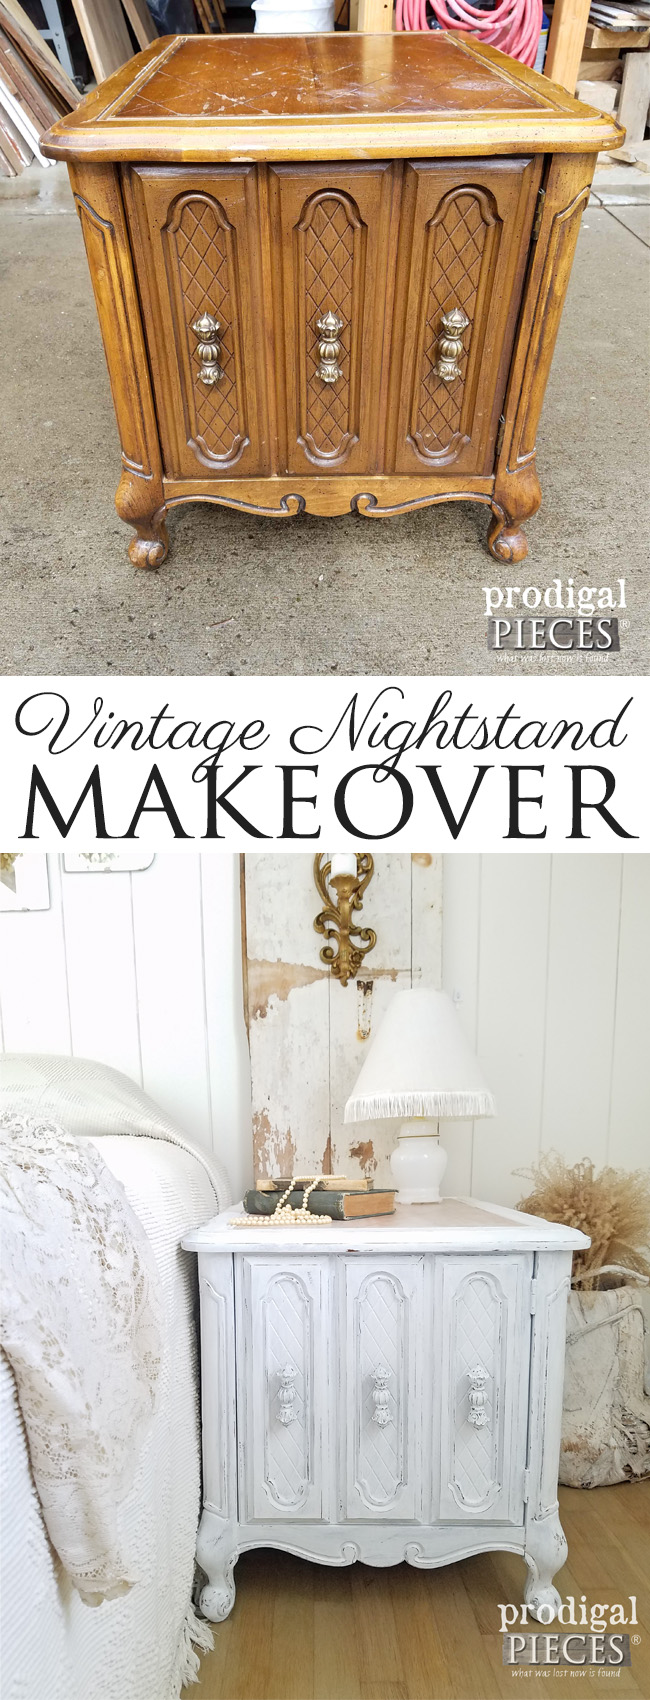 Teen girl gives this vintage nightstand a makeover giving it a cottage farmhouse feel. Find it at Prodigal Pieces | prodigalpieces.com